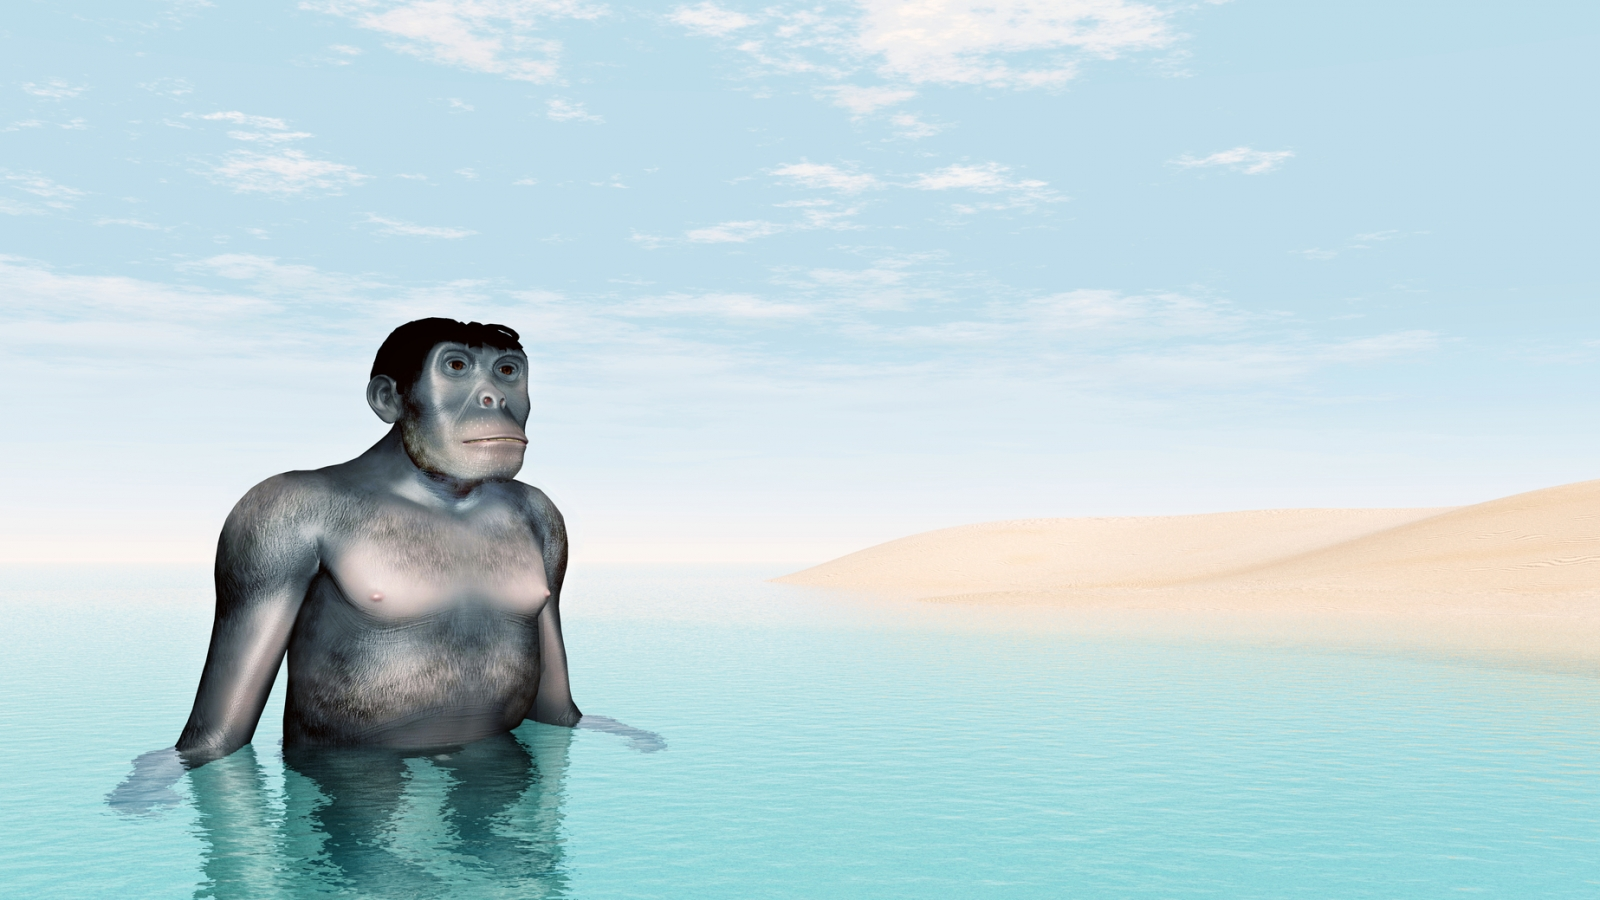 aquatic ape theory